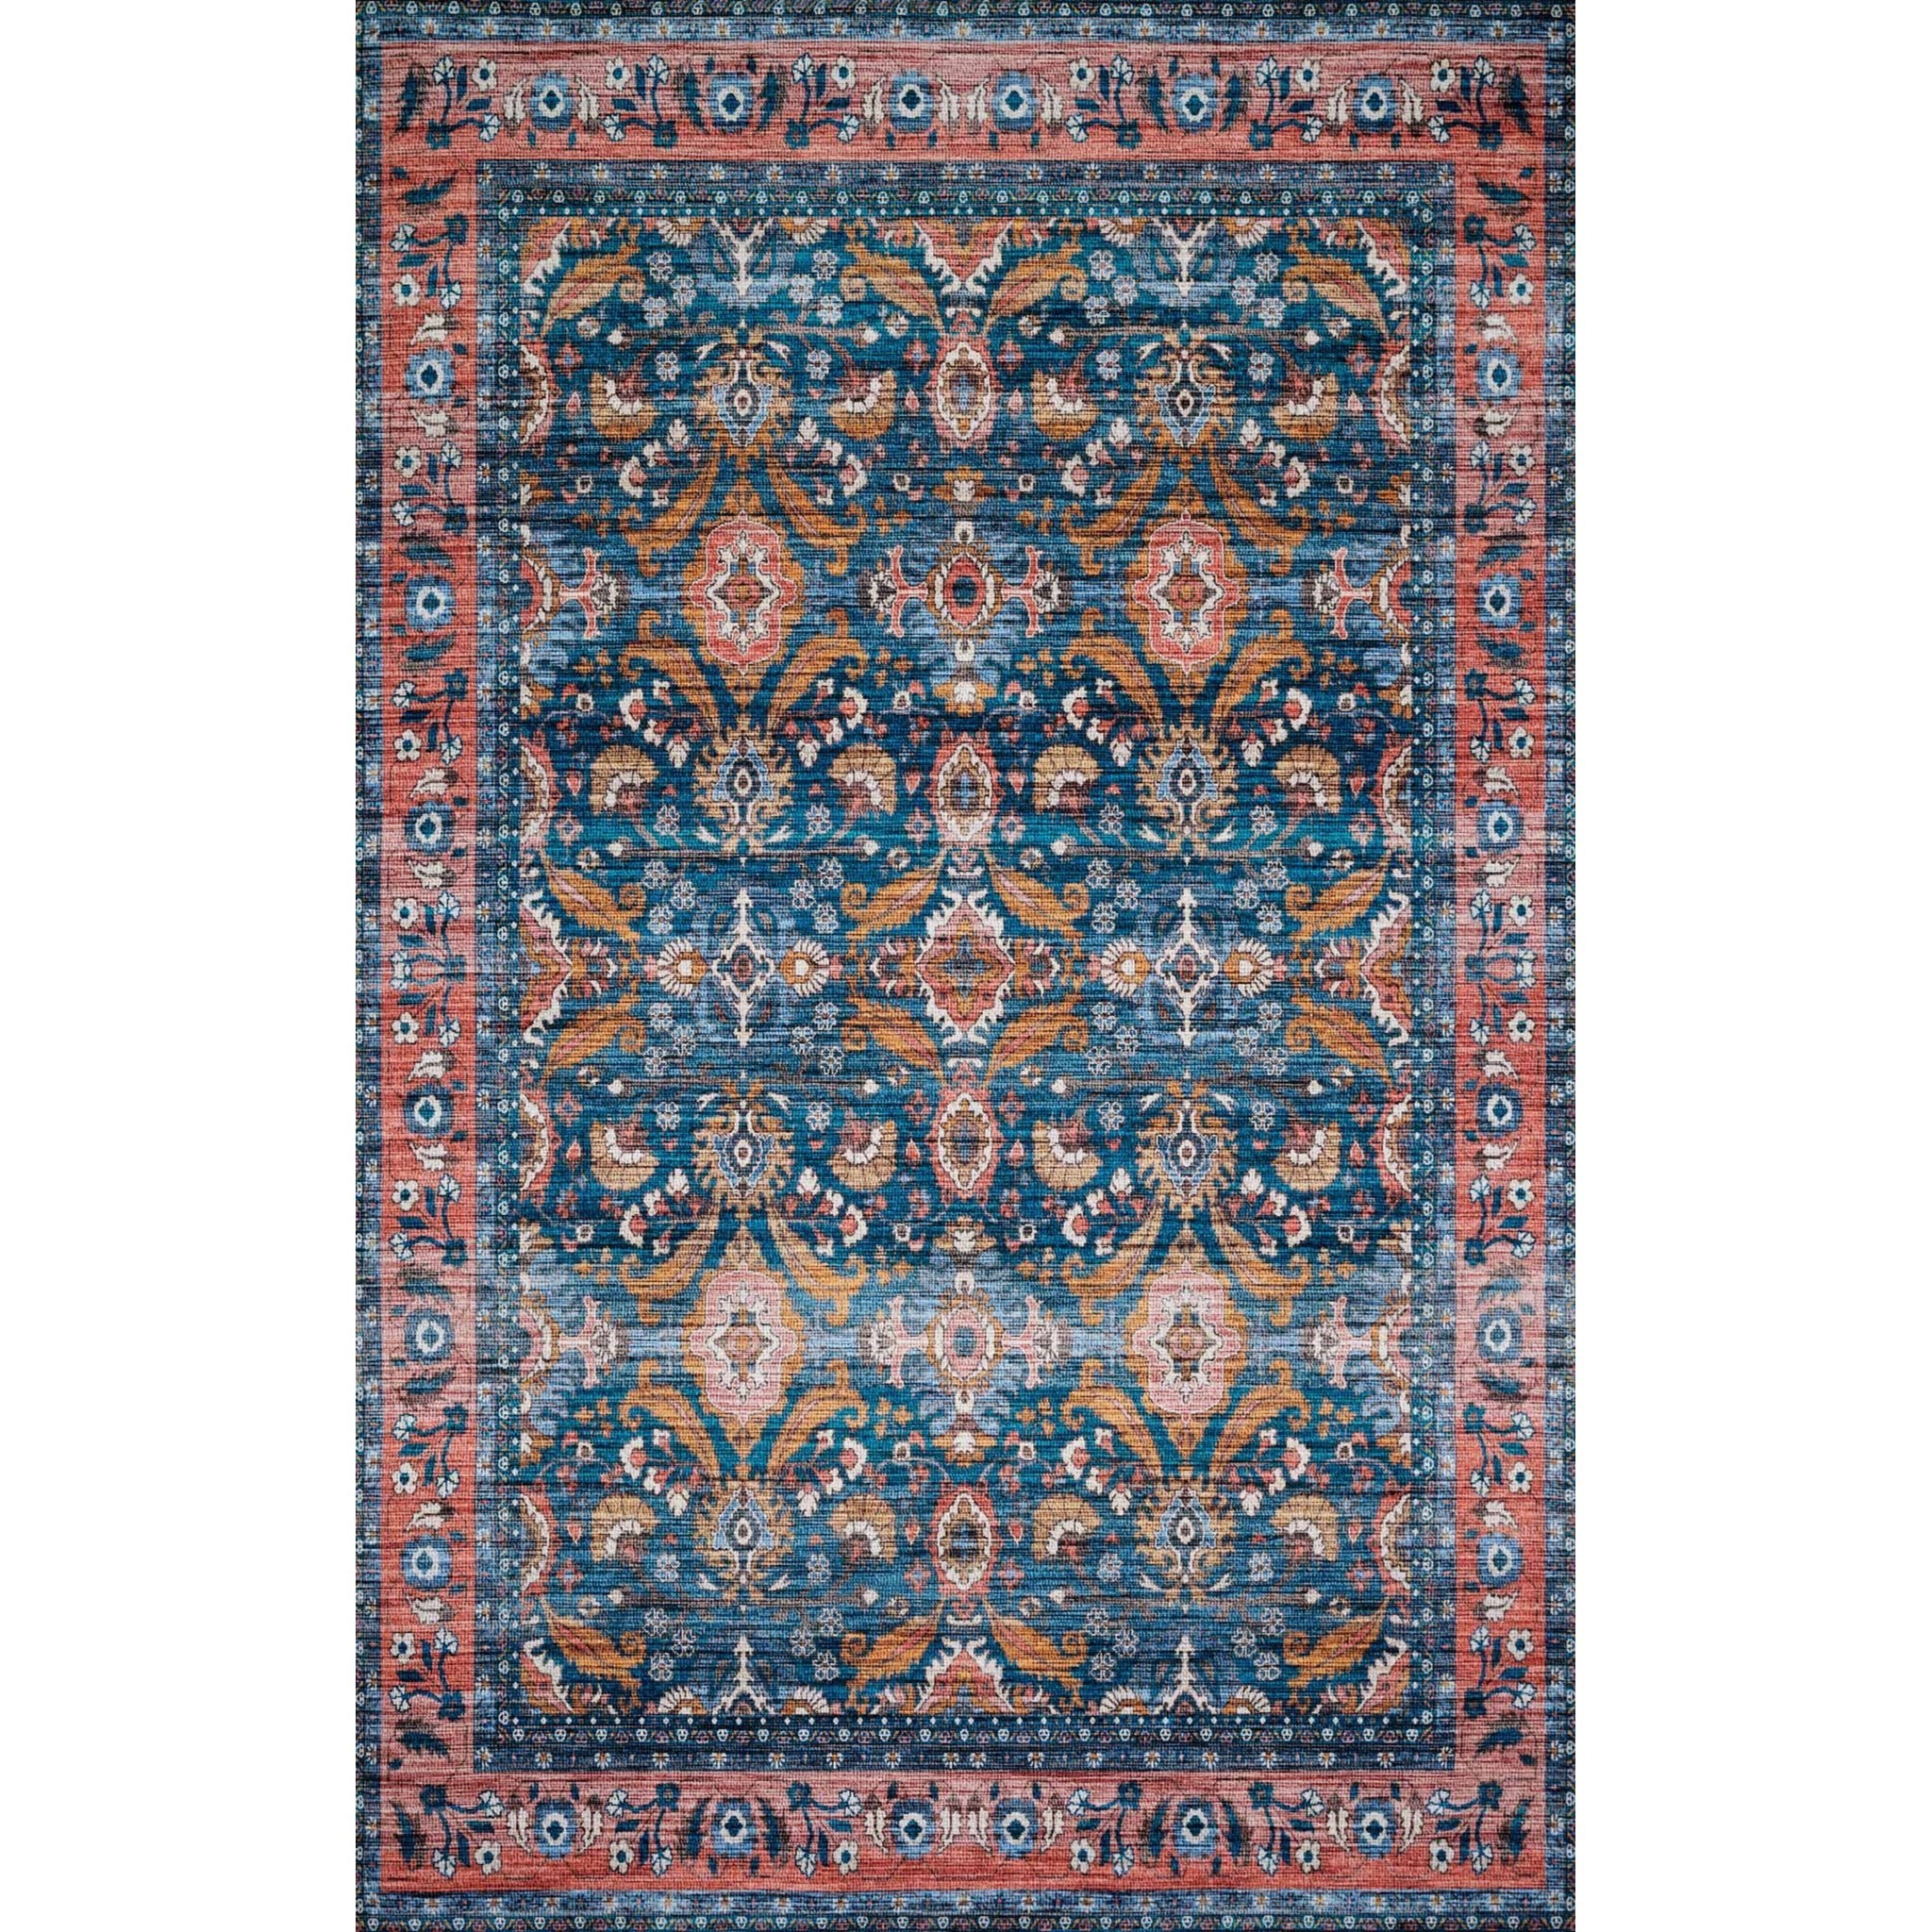 """Cielo-Loloi X Justina Blakeney Collection 8'-0"""" x 10'-0"""" Rug by Loloi Rugs at Virginia Furniture Market"""